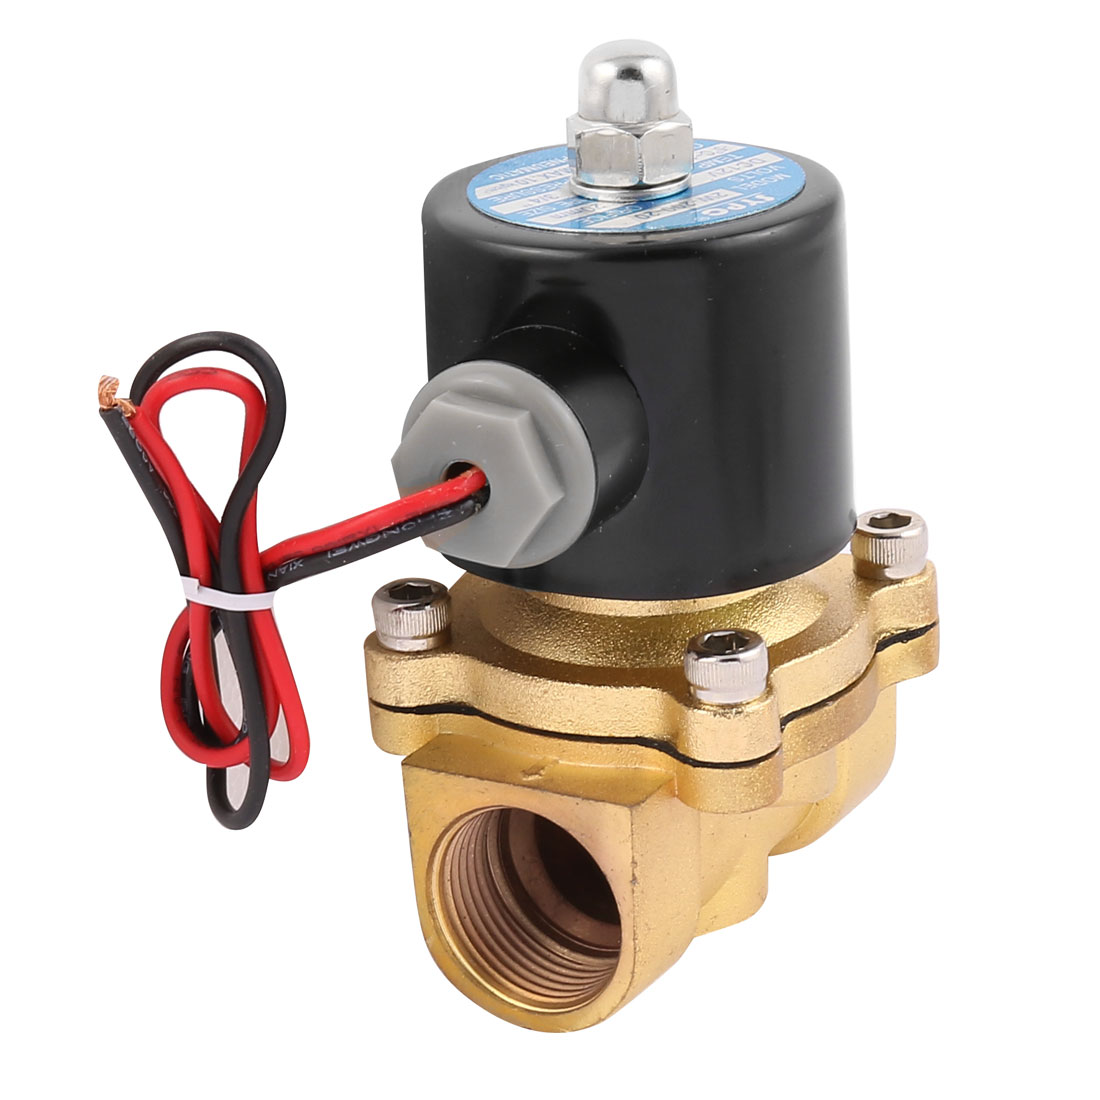 Air, Water, Oil Pneumatic Solenoid Valve 2W200-20 3/4 3 8 electric solenoid valve water air n c all brass valve body 2w040 10 dc12v ac110v